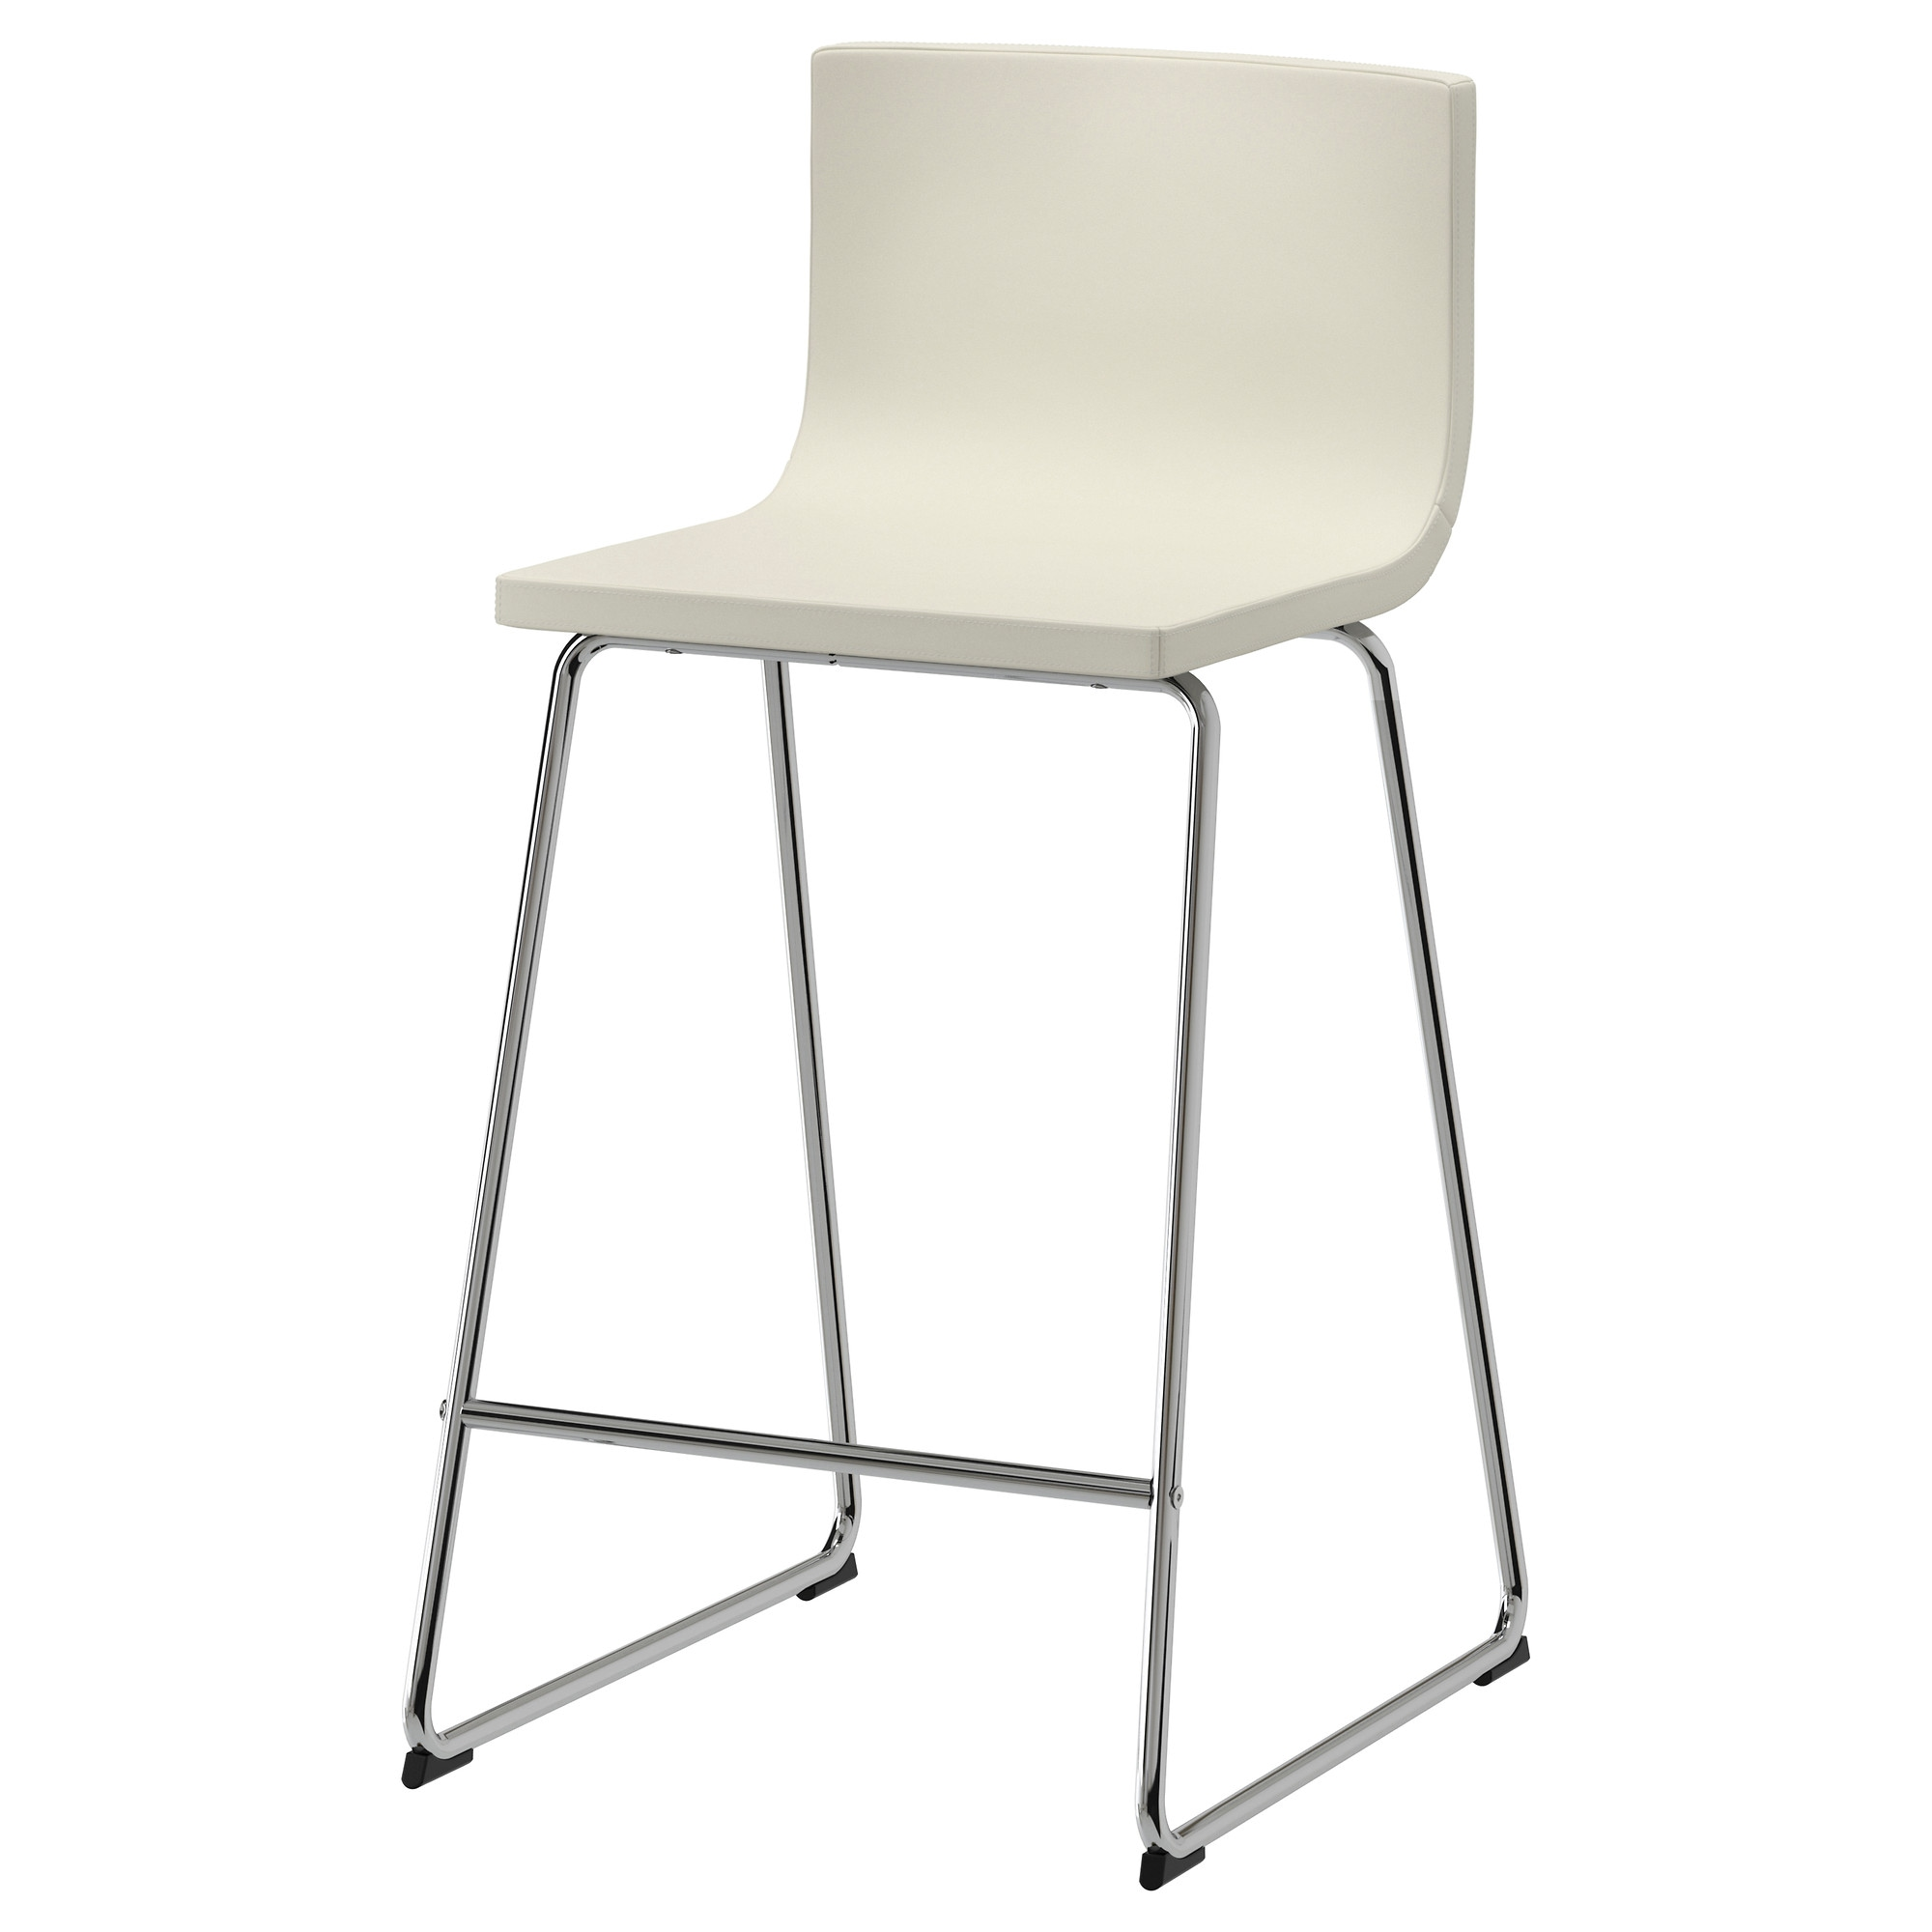 Bar Stools For A Bar Part - 41: BERNHARD Bar Stool With Backrest - IKEA